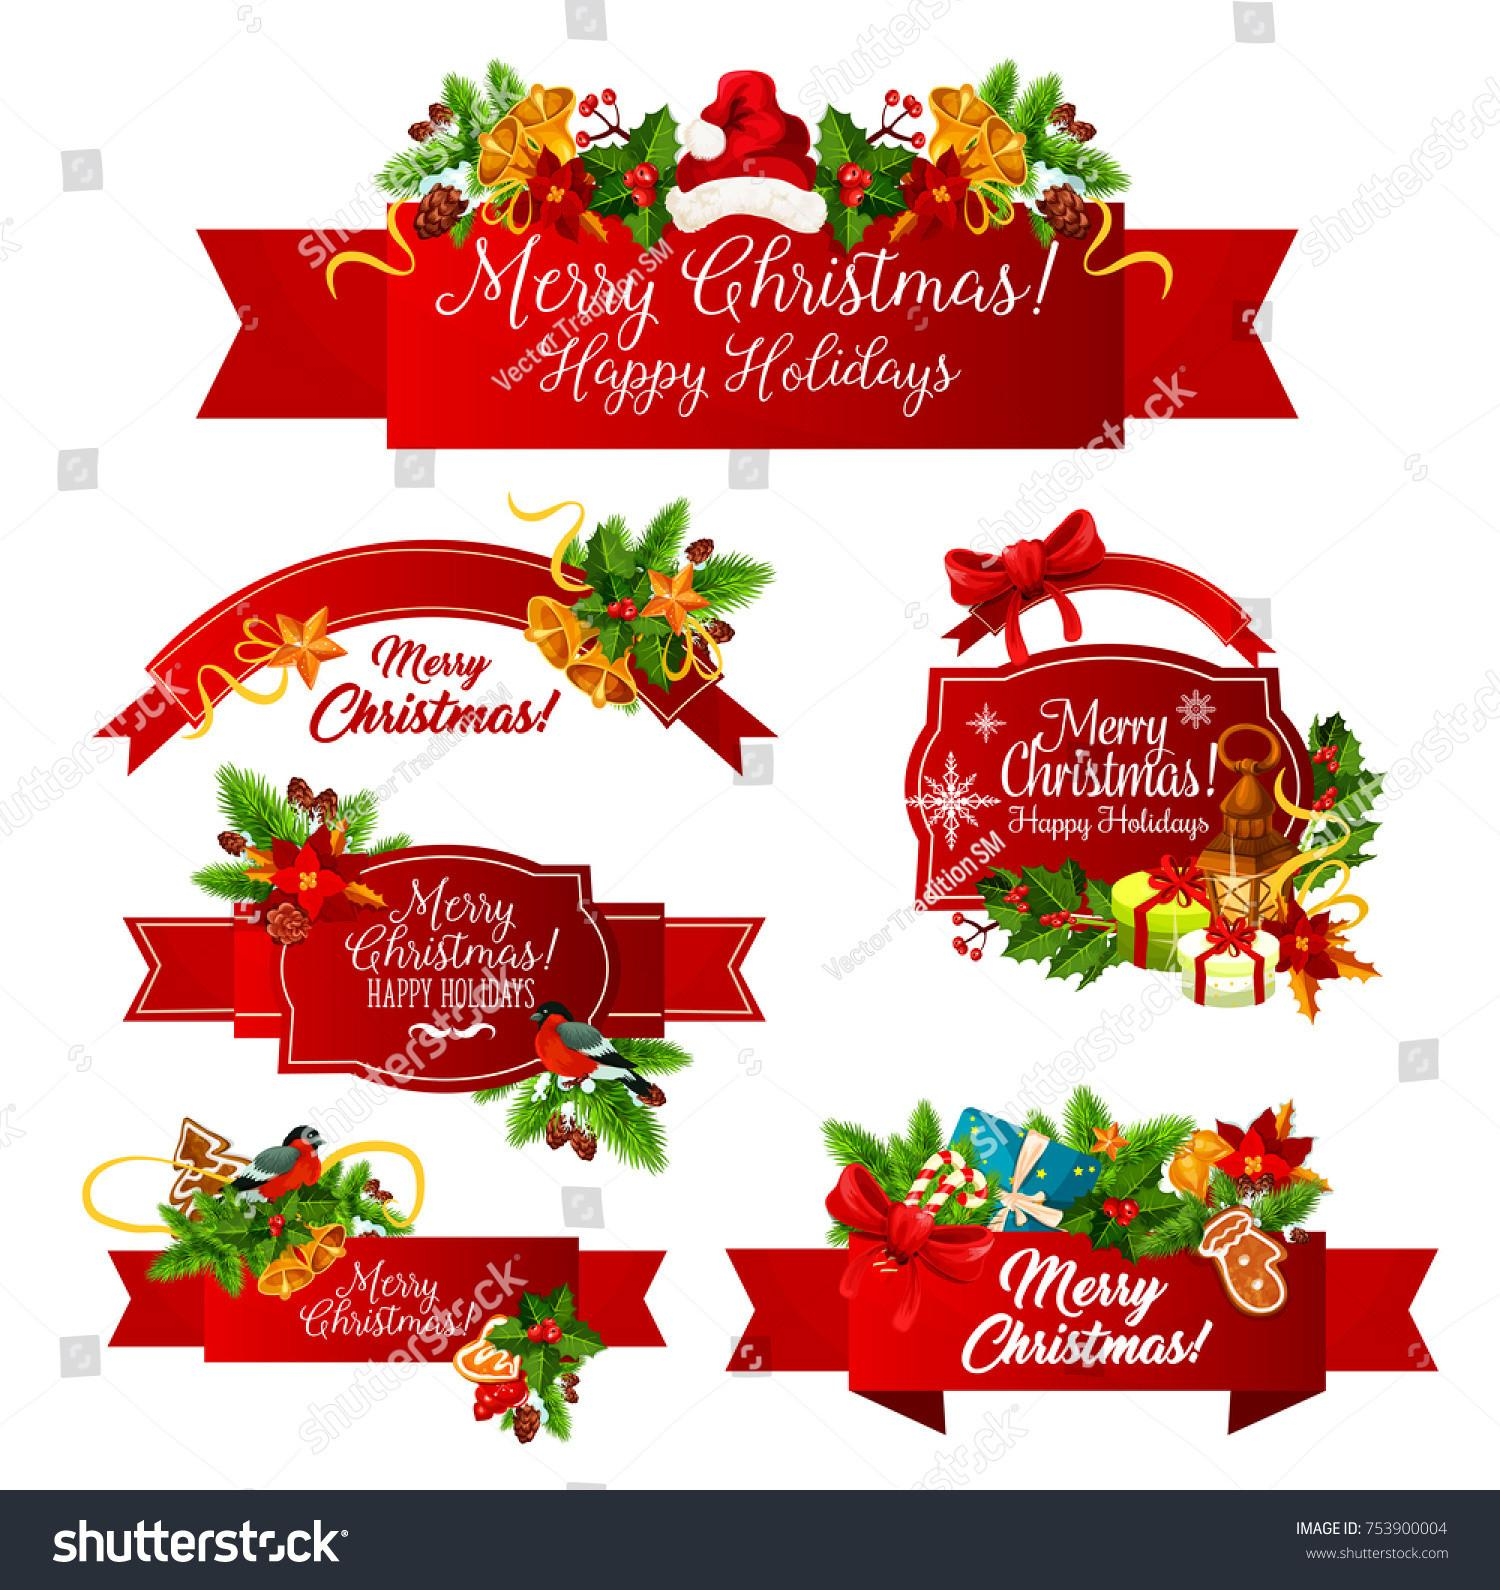 Merry Christmas Greeting Happy Holiday Wishes Stock Vector